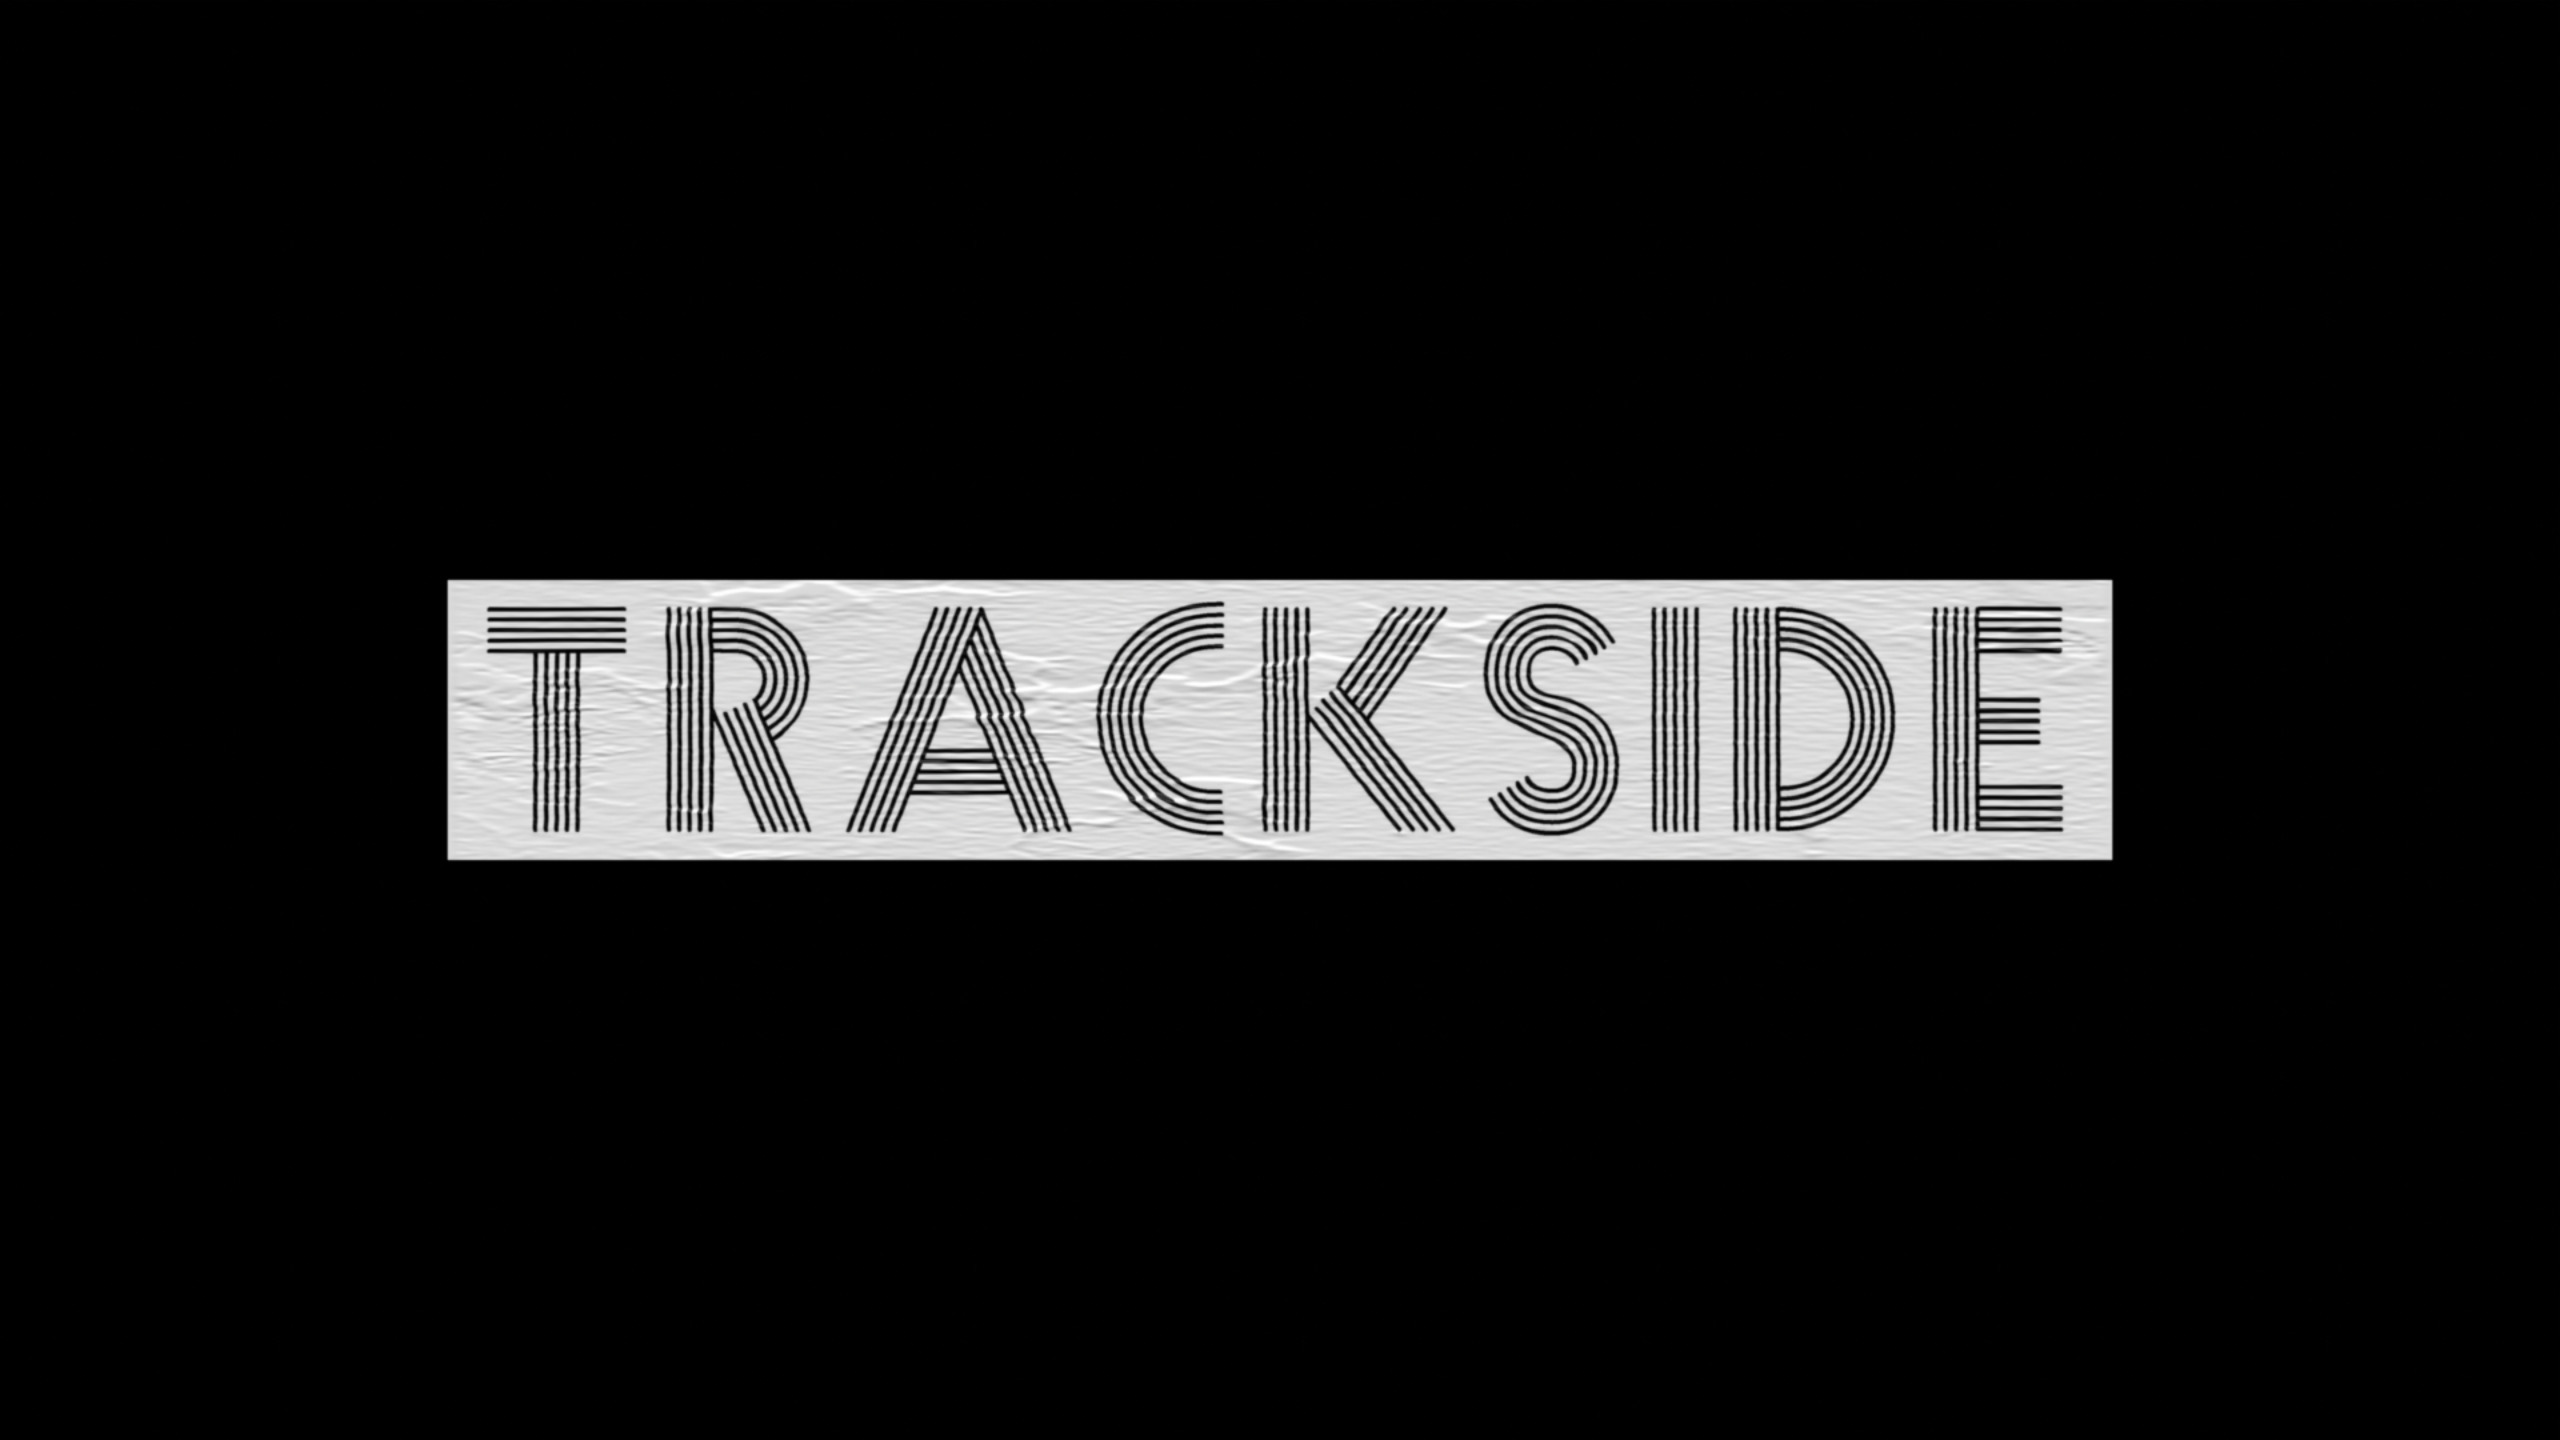 K. Michael Washington (@trackside) Cover Image